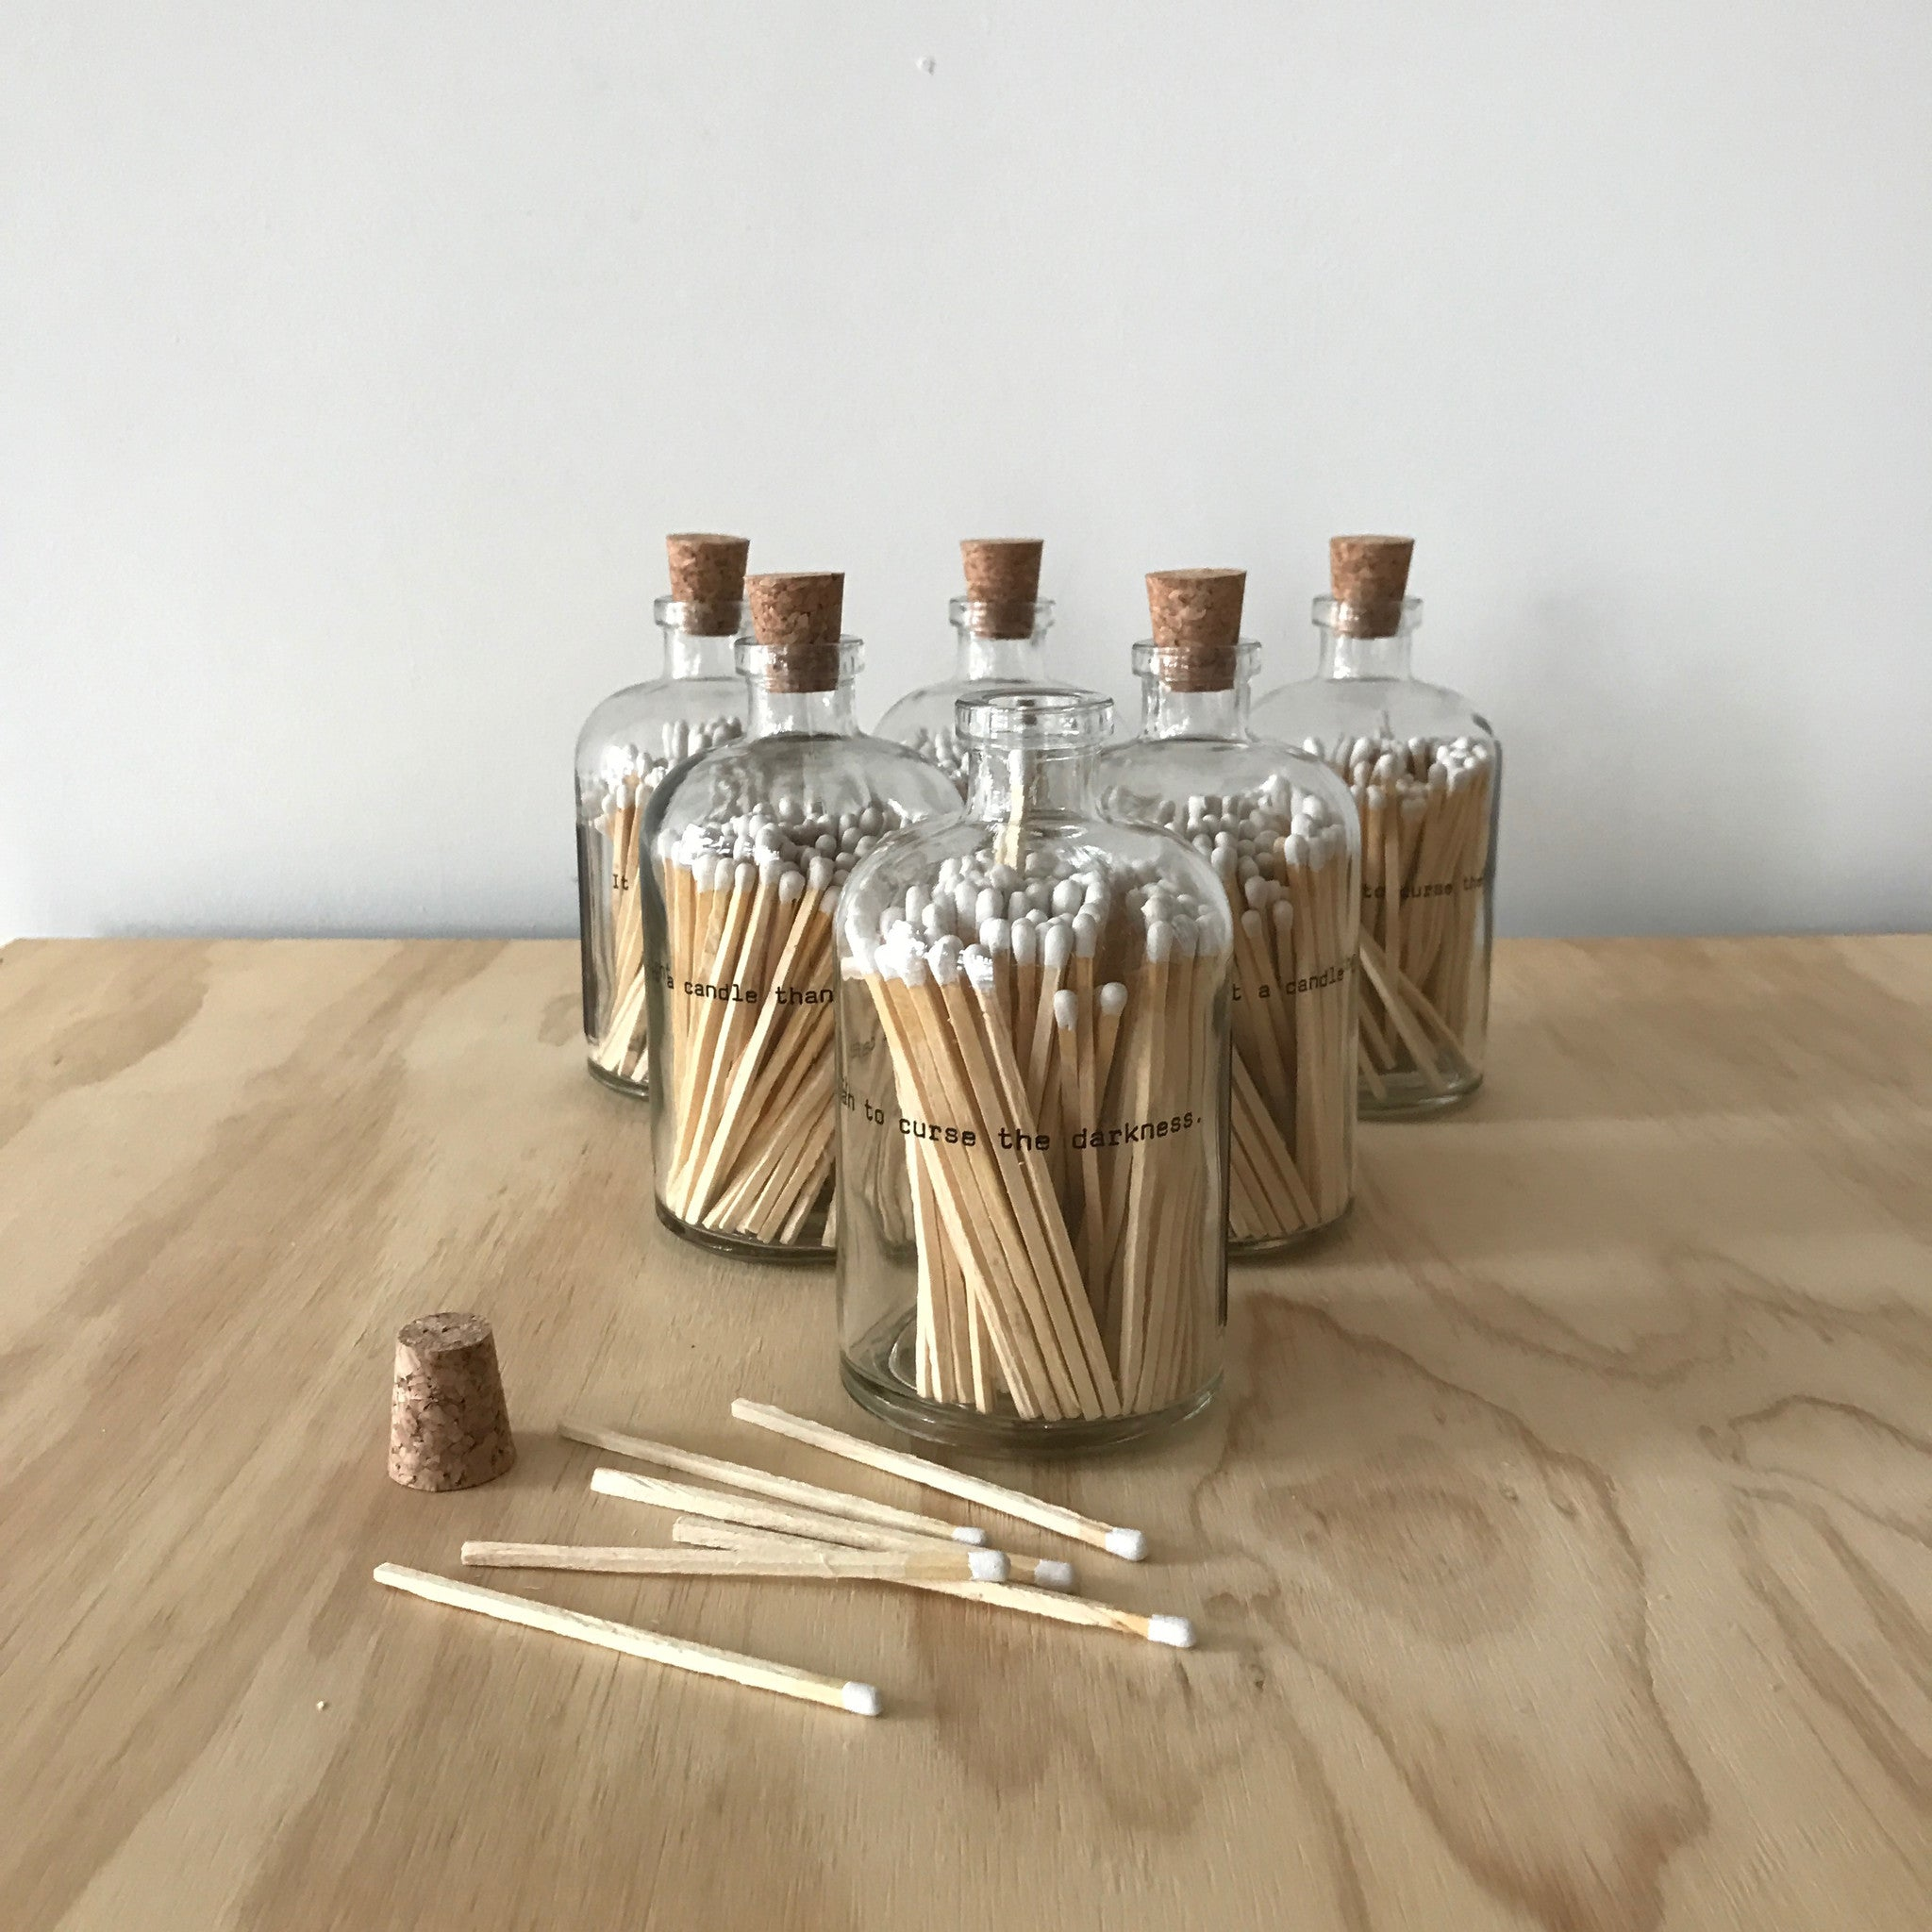 Apothecary Jar Poetry Matches by Skeem Design - Upstate MN